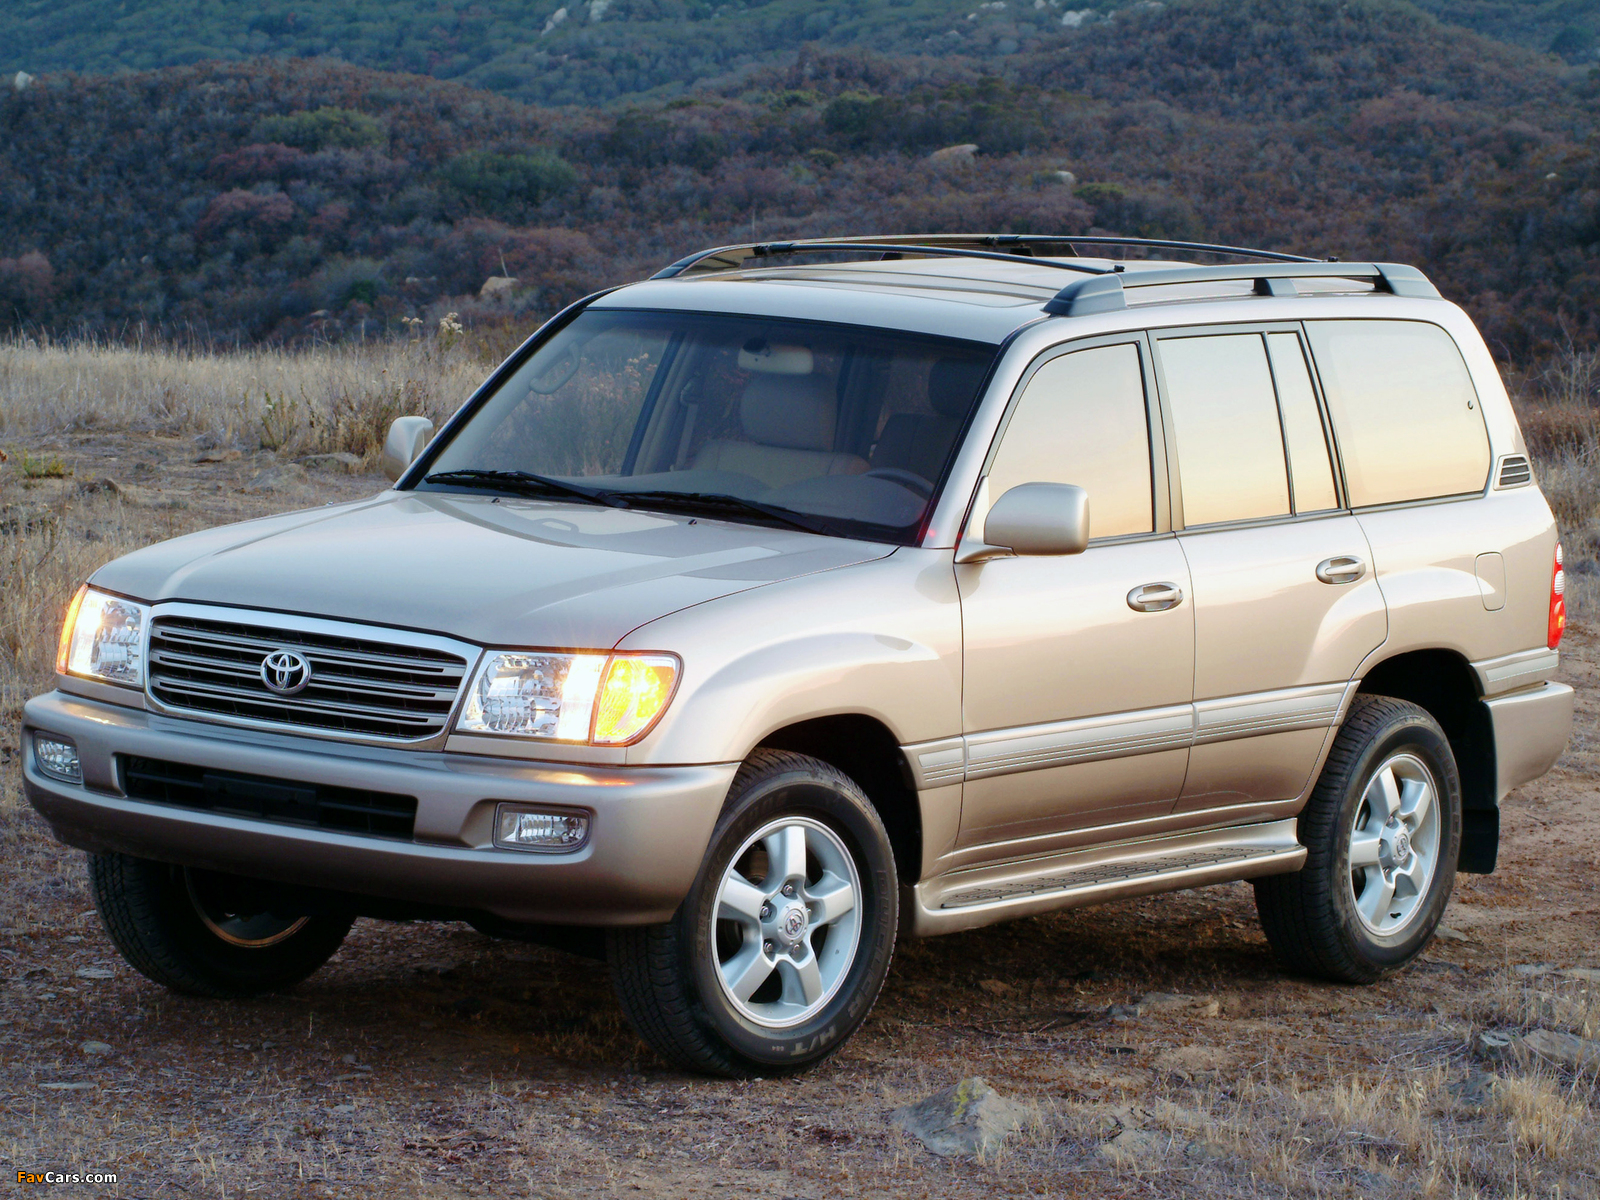 2002 Toyota Land Cruiser #18